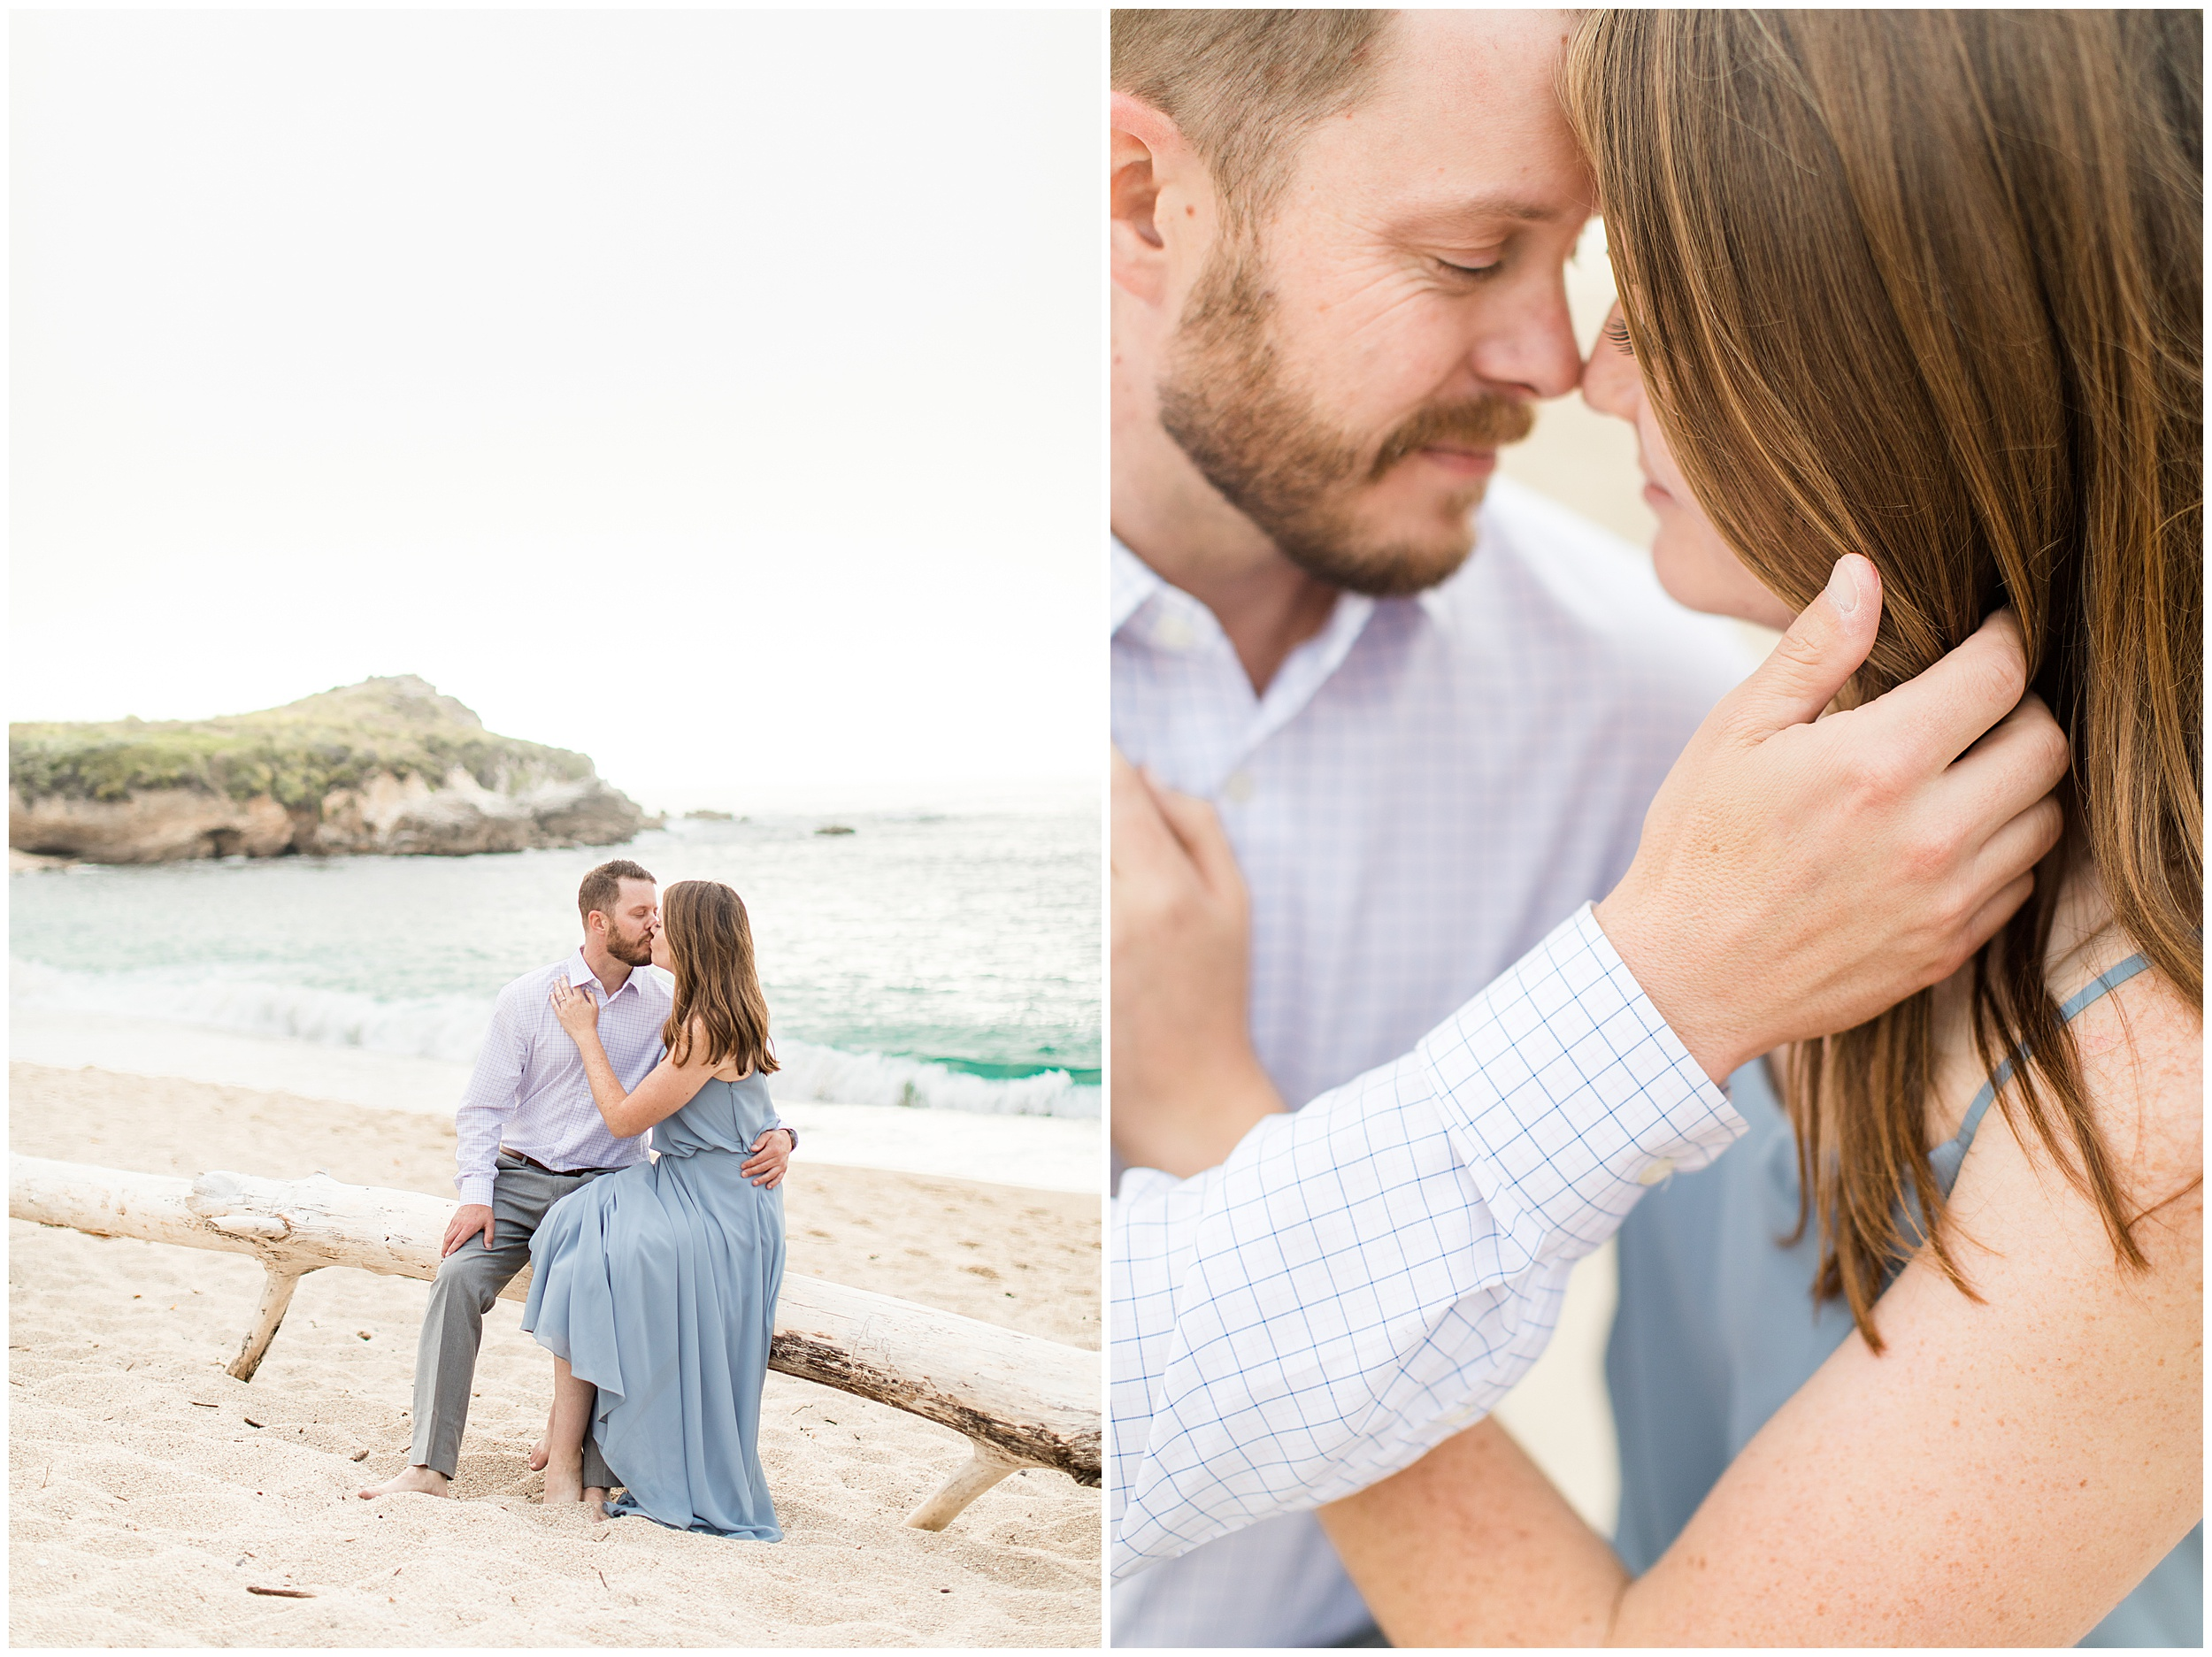 2019 carmel by the sea surprise proposal engagement session wedding photographer angela sue photography_0041.jpg